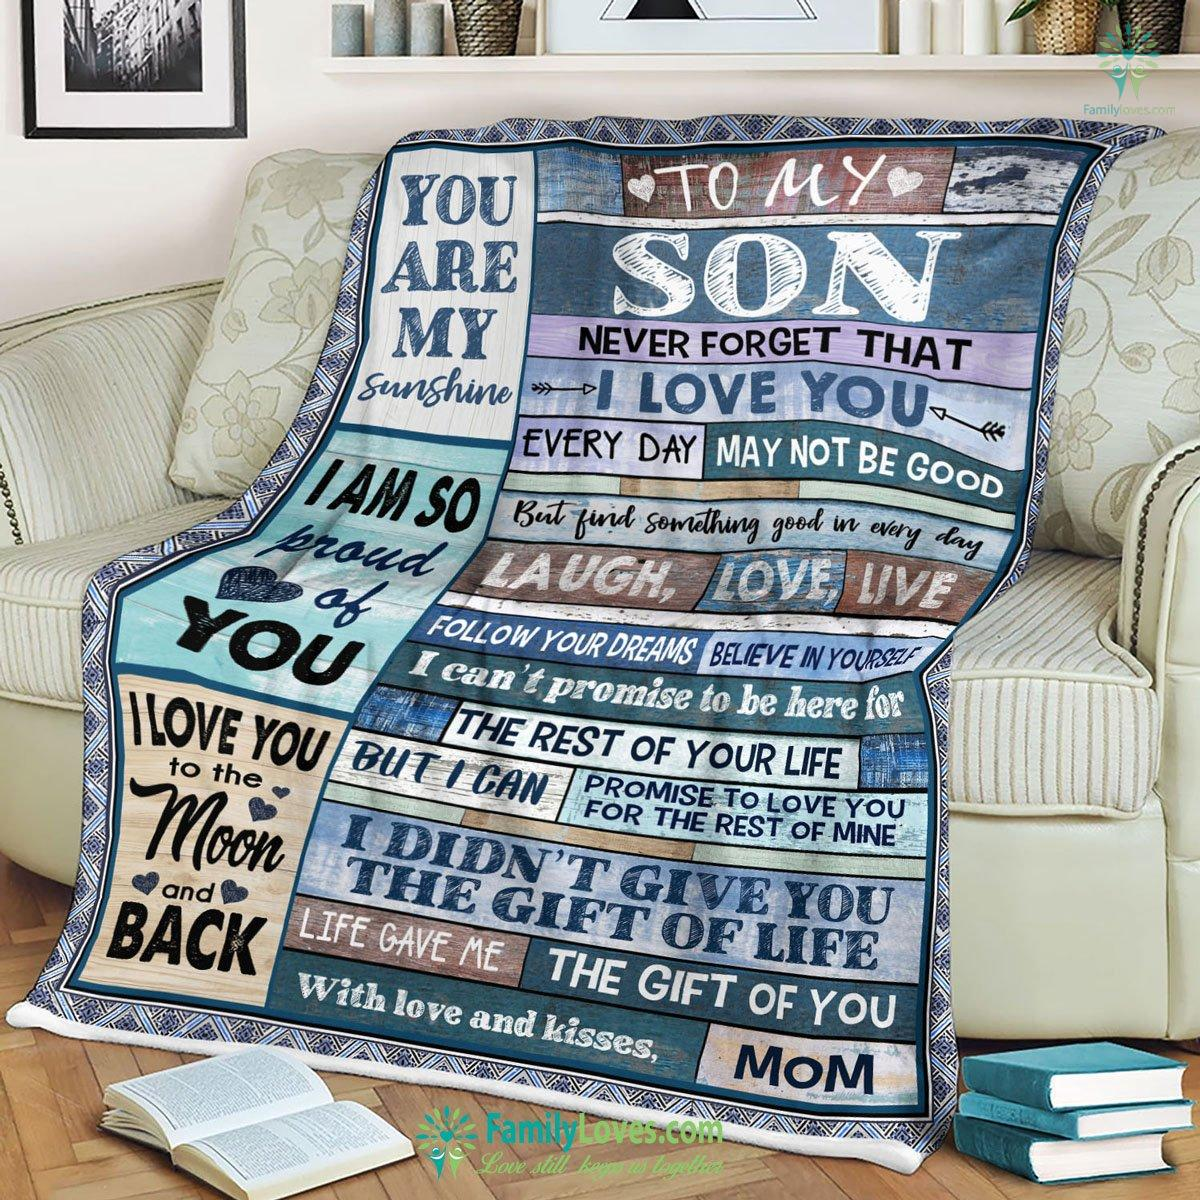 Family Mom You Are My Sunshine To My Son Blanket 23 Familyloves.com